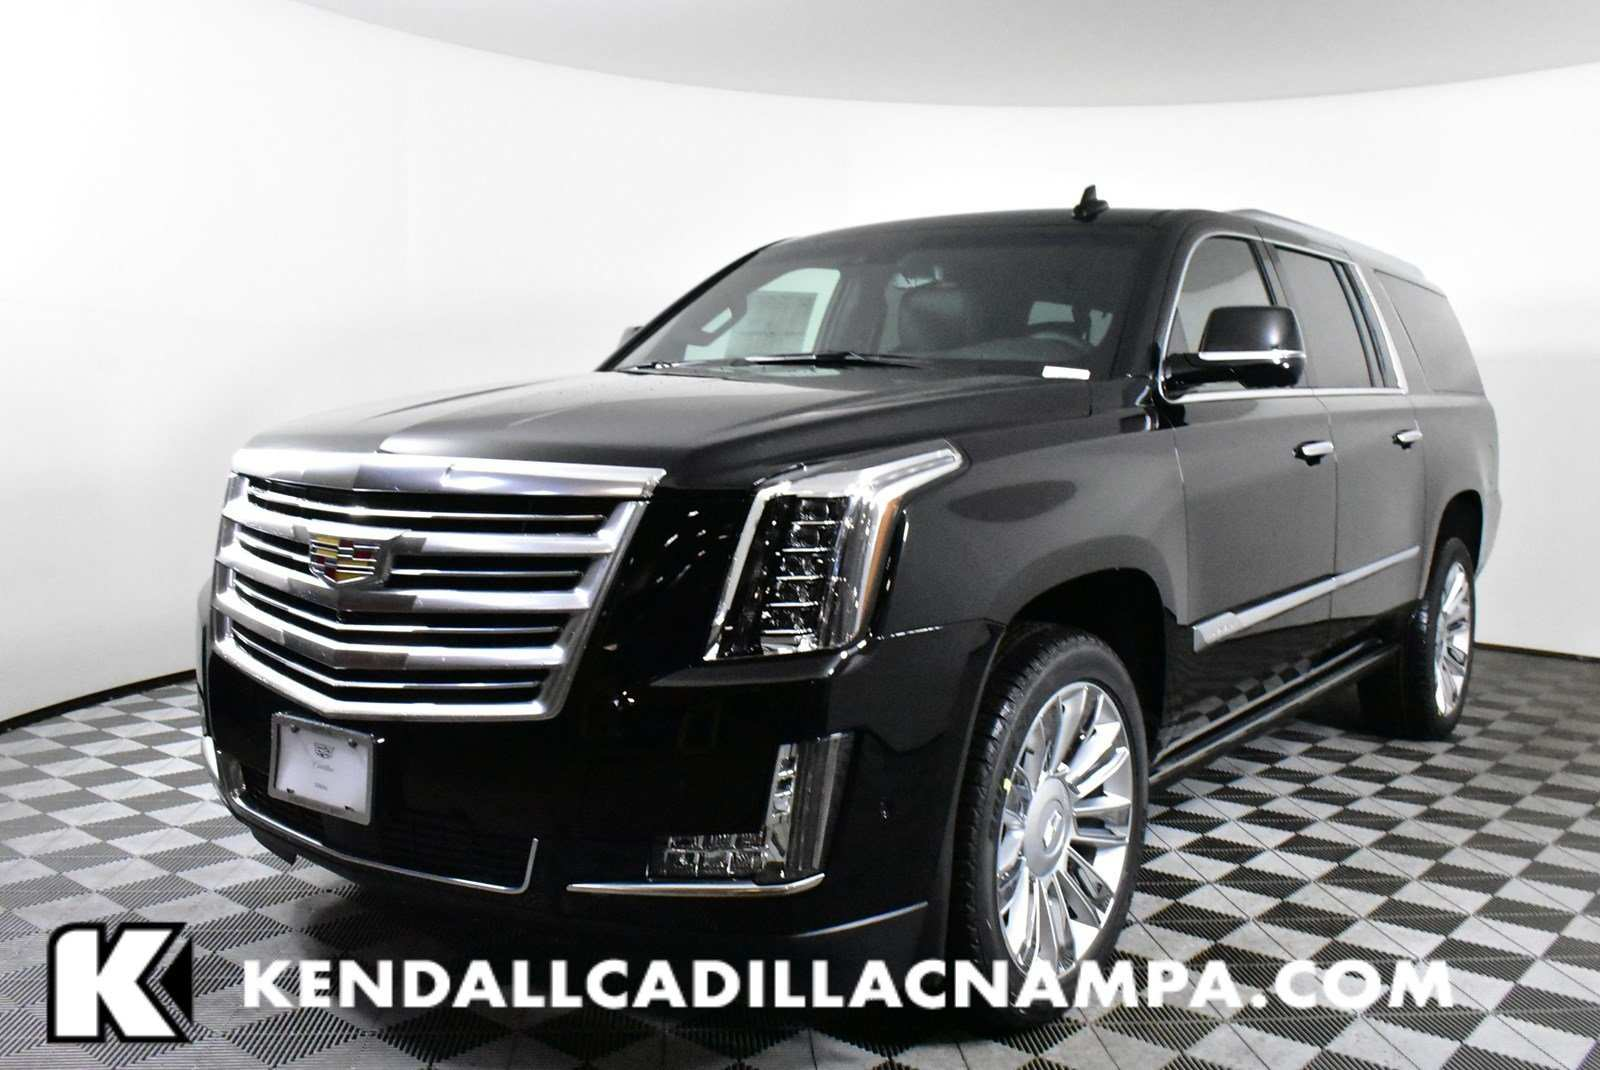 20 Gallery of The Cadillac Escalade 2019 Platinum Exterior Rumors by The Cadillac Escalade 2019 Platinum Exterior